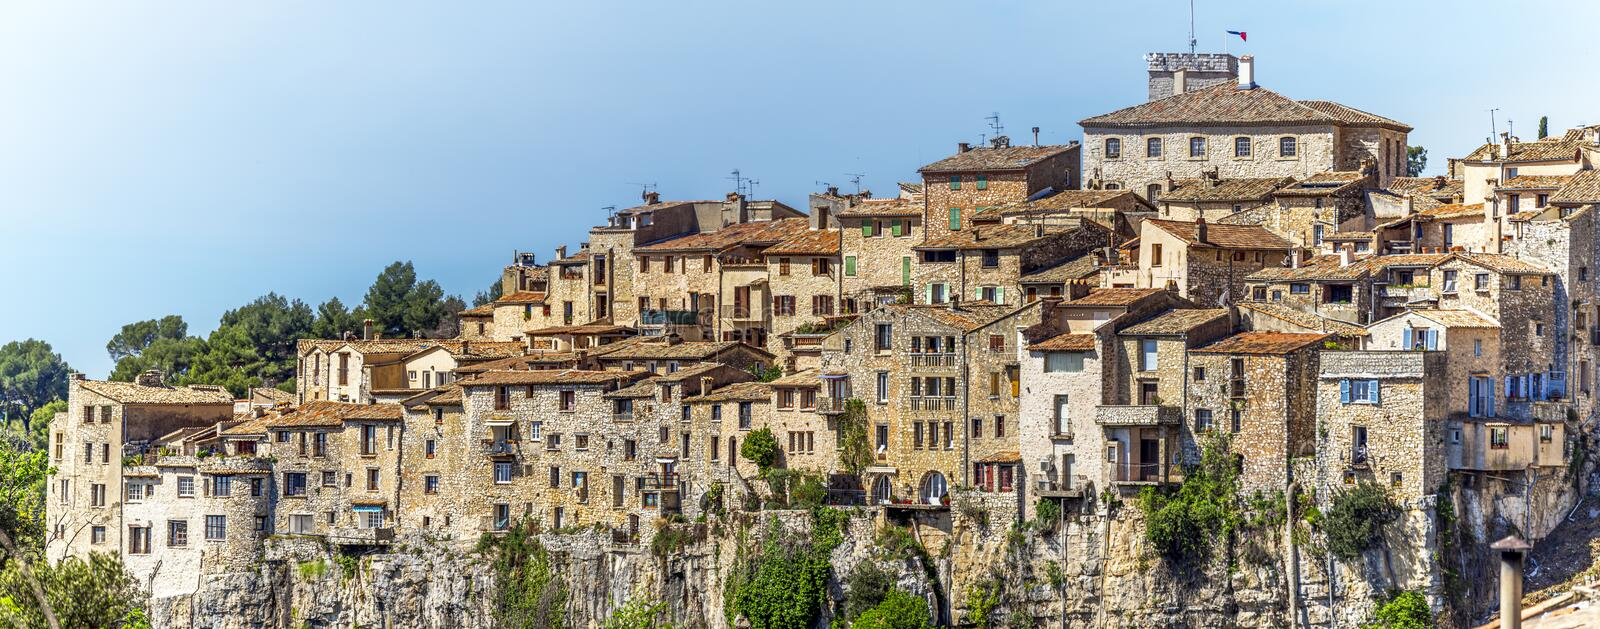 Panoramic view of Tourrettes-sur-Loup medieval village from Cassan Valley. Southeastern France, Alpes Maritimes.  stock photos